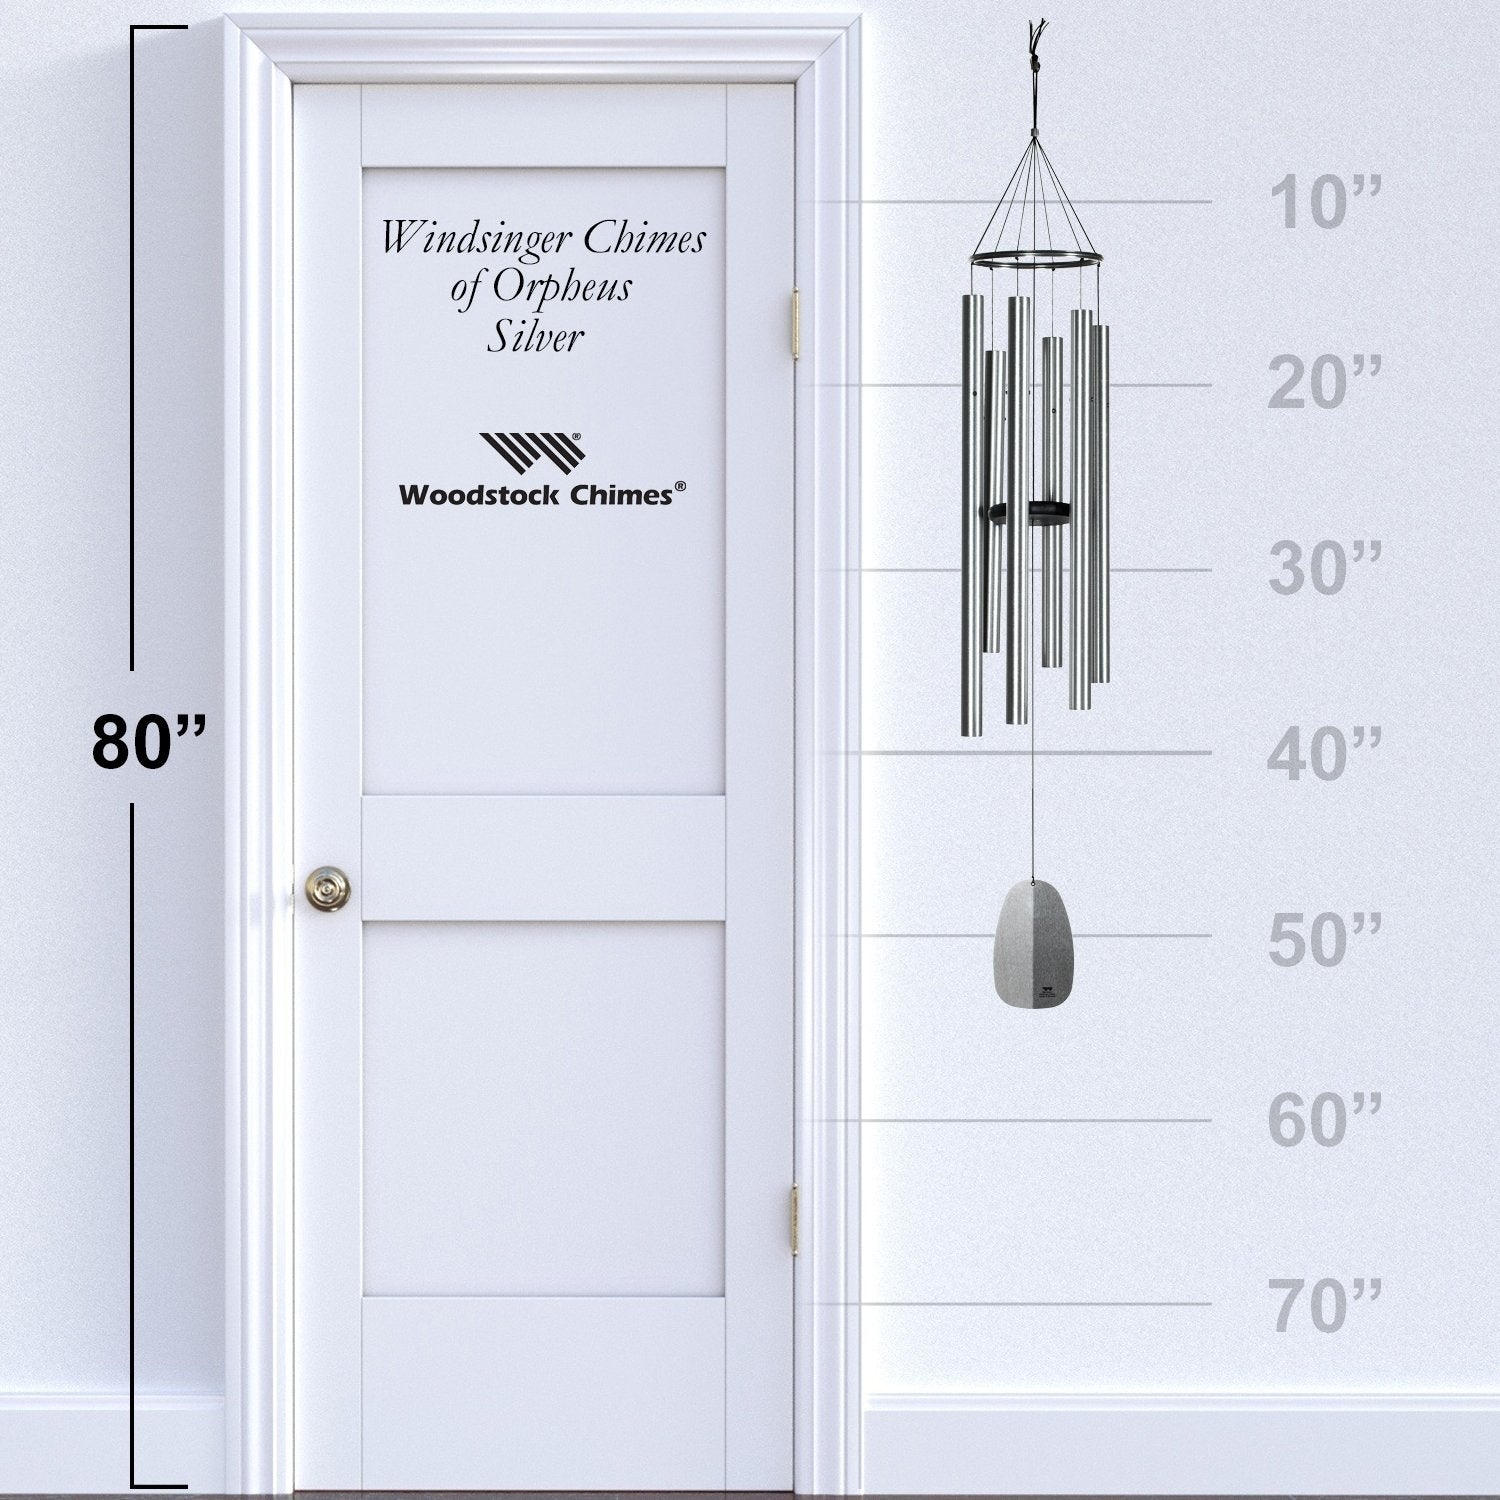 Windsinger Chimes of Orpheus - Silver proportion image